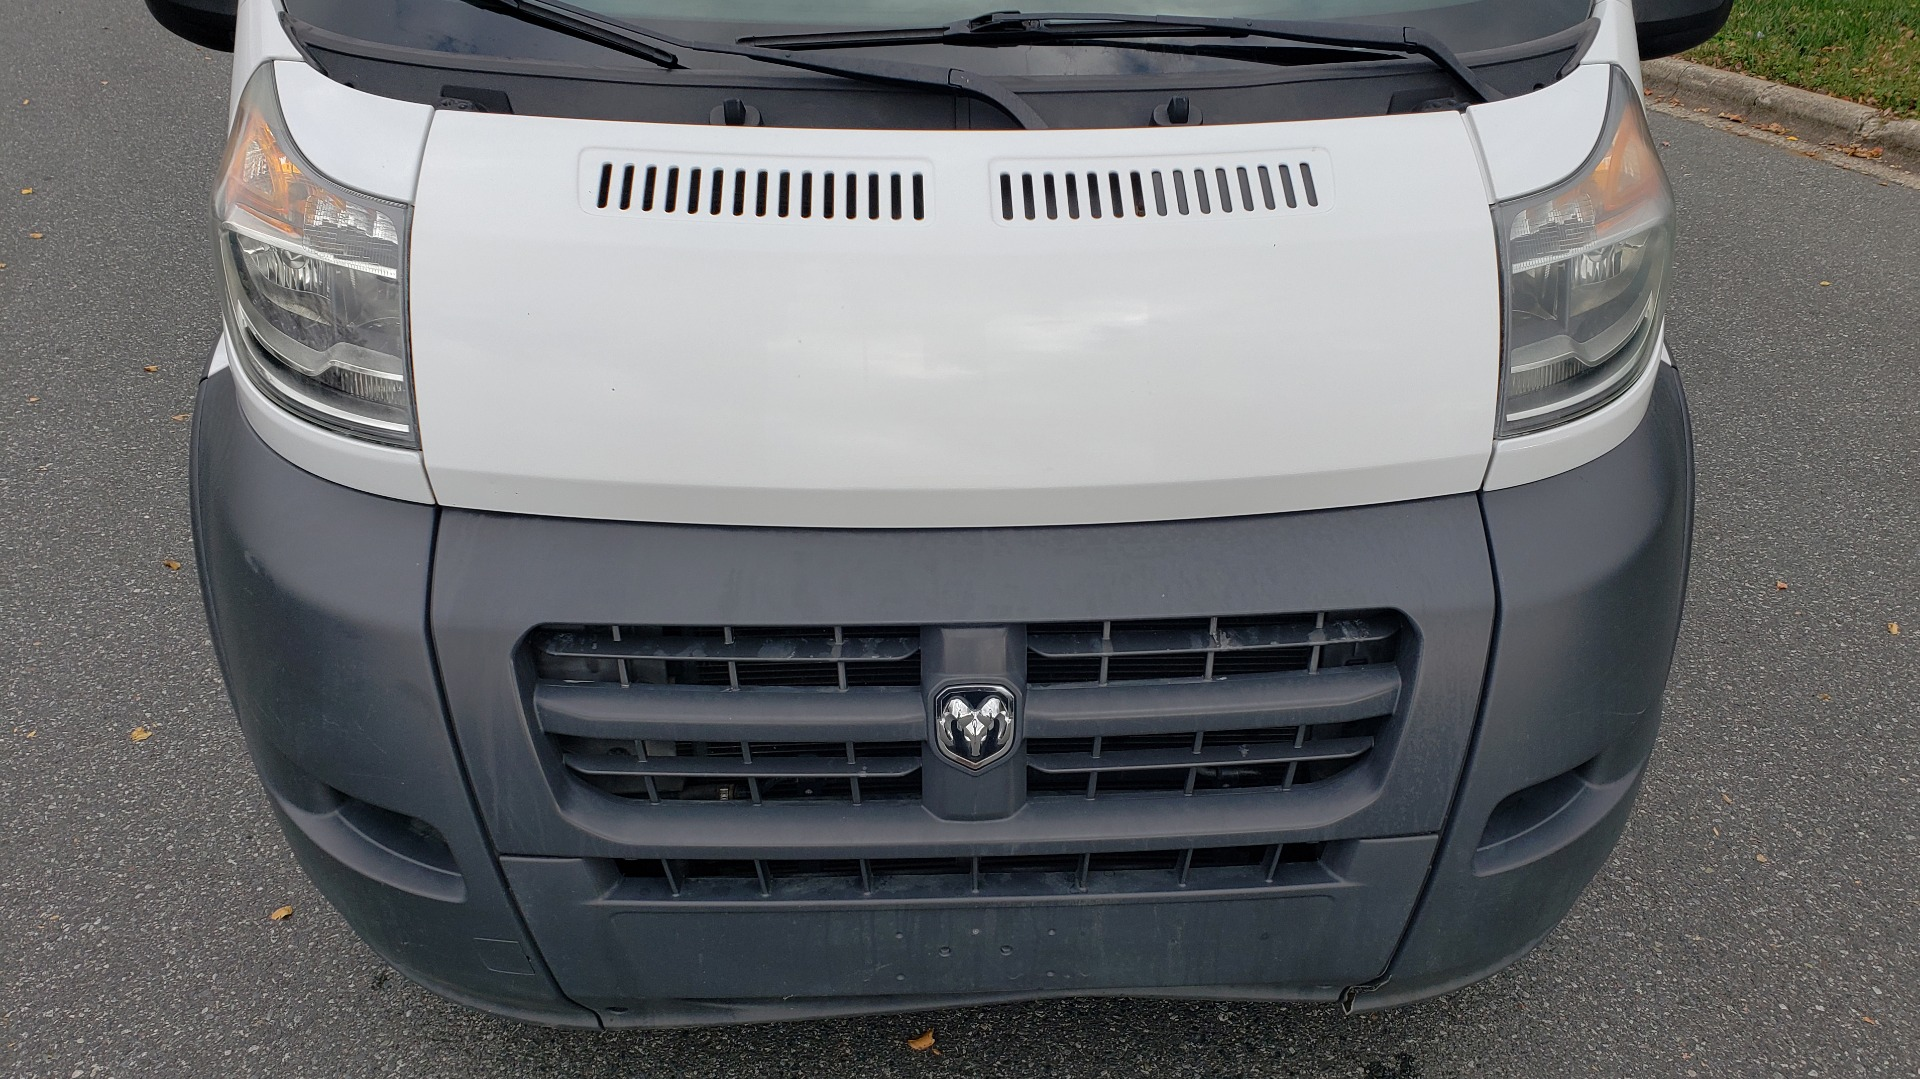 Used 2015 Ram PROMASTER CARGO VAN 136-INCH WB / LOW ROOF / LADDER RACK / INSIDE RACKS for sale $16,995 at Formula Imports in Charlotte NC 28227 22